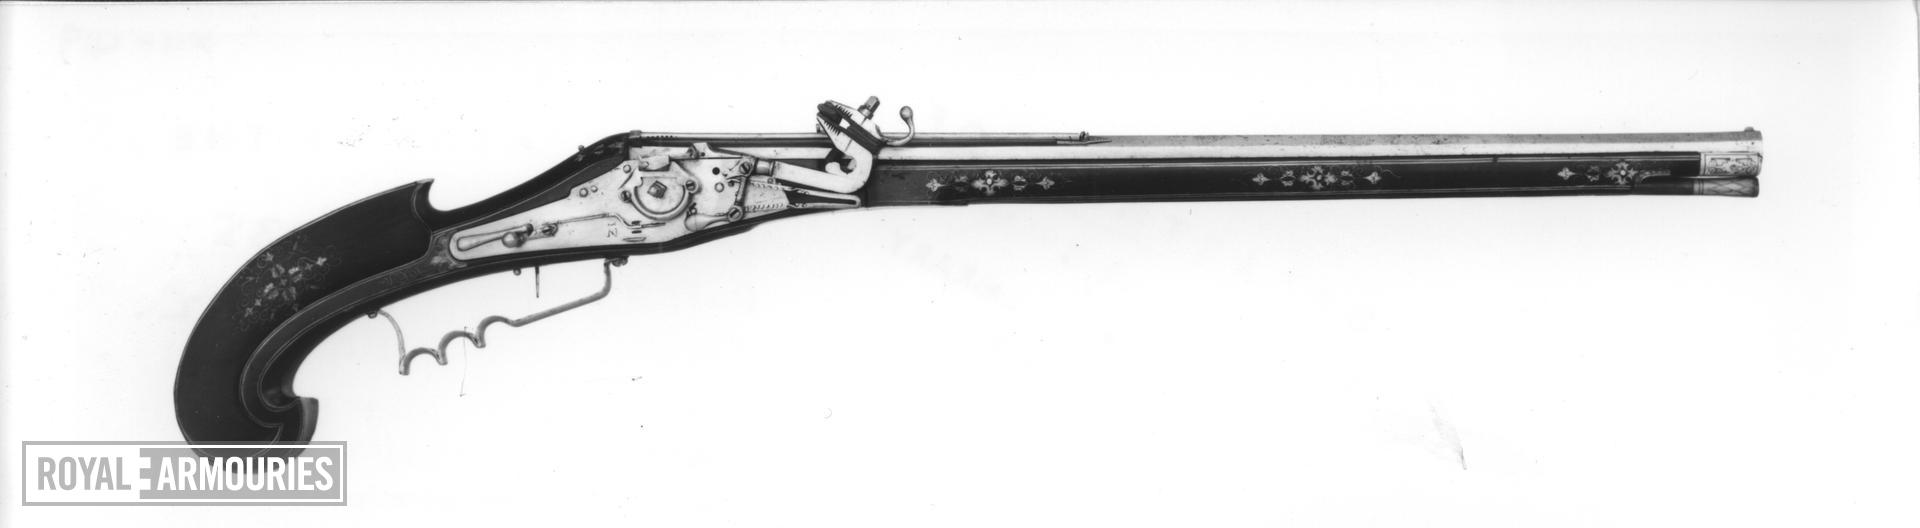 Wheellock superimposed musket For superimposed charges, 8 charges